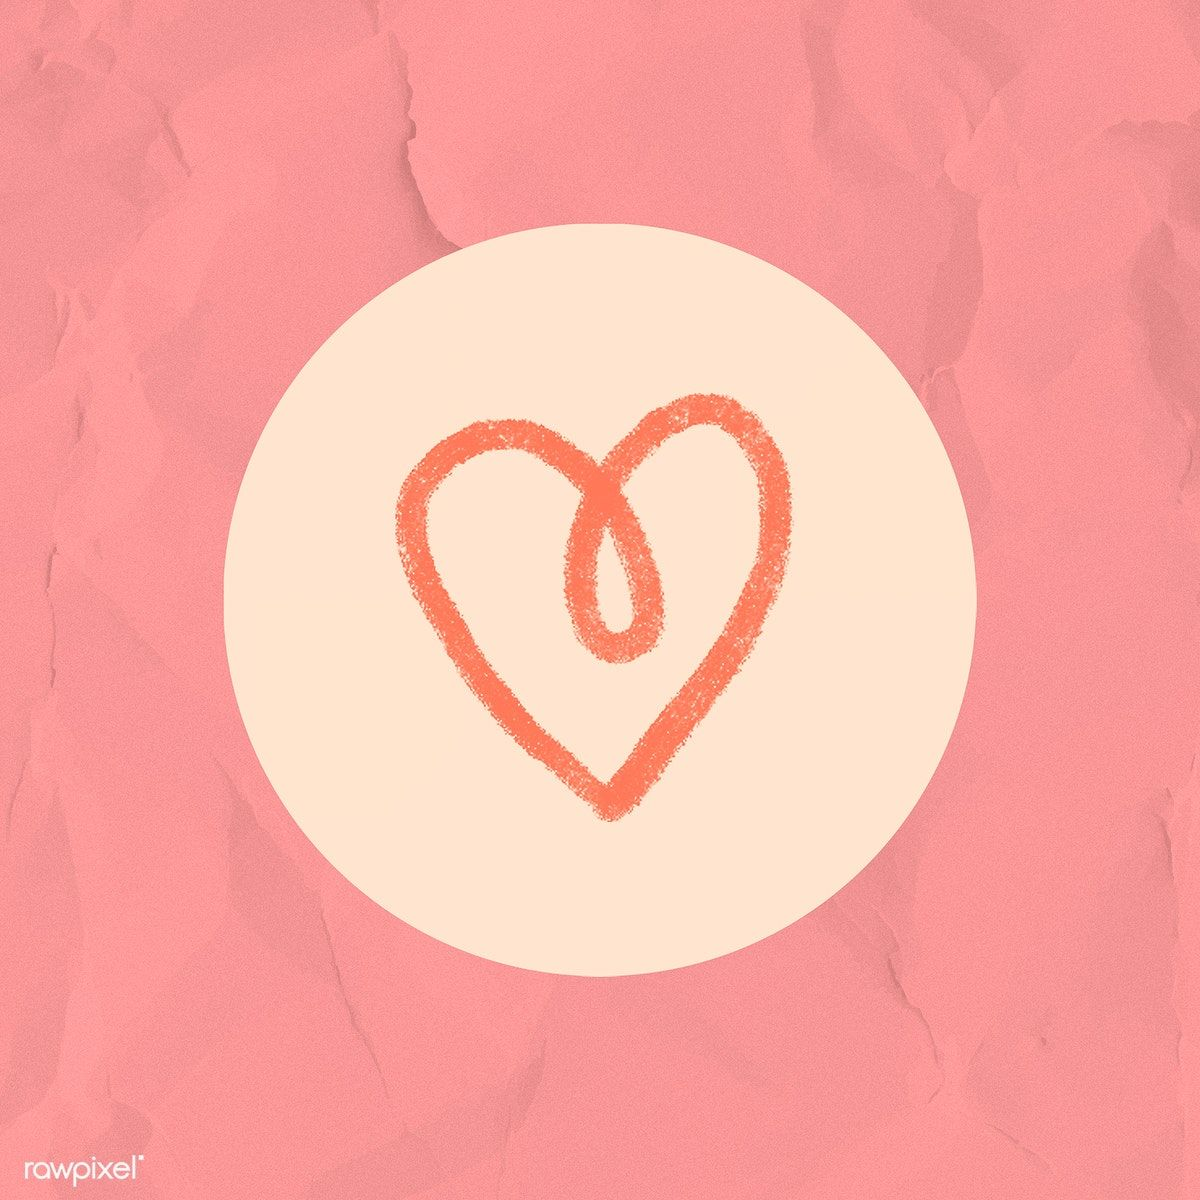 Instagram story highlight heart icon illustration free